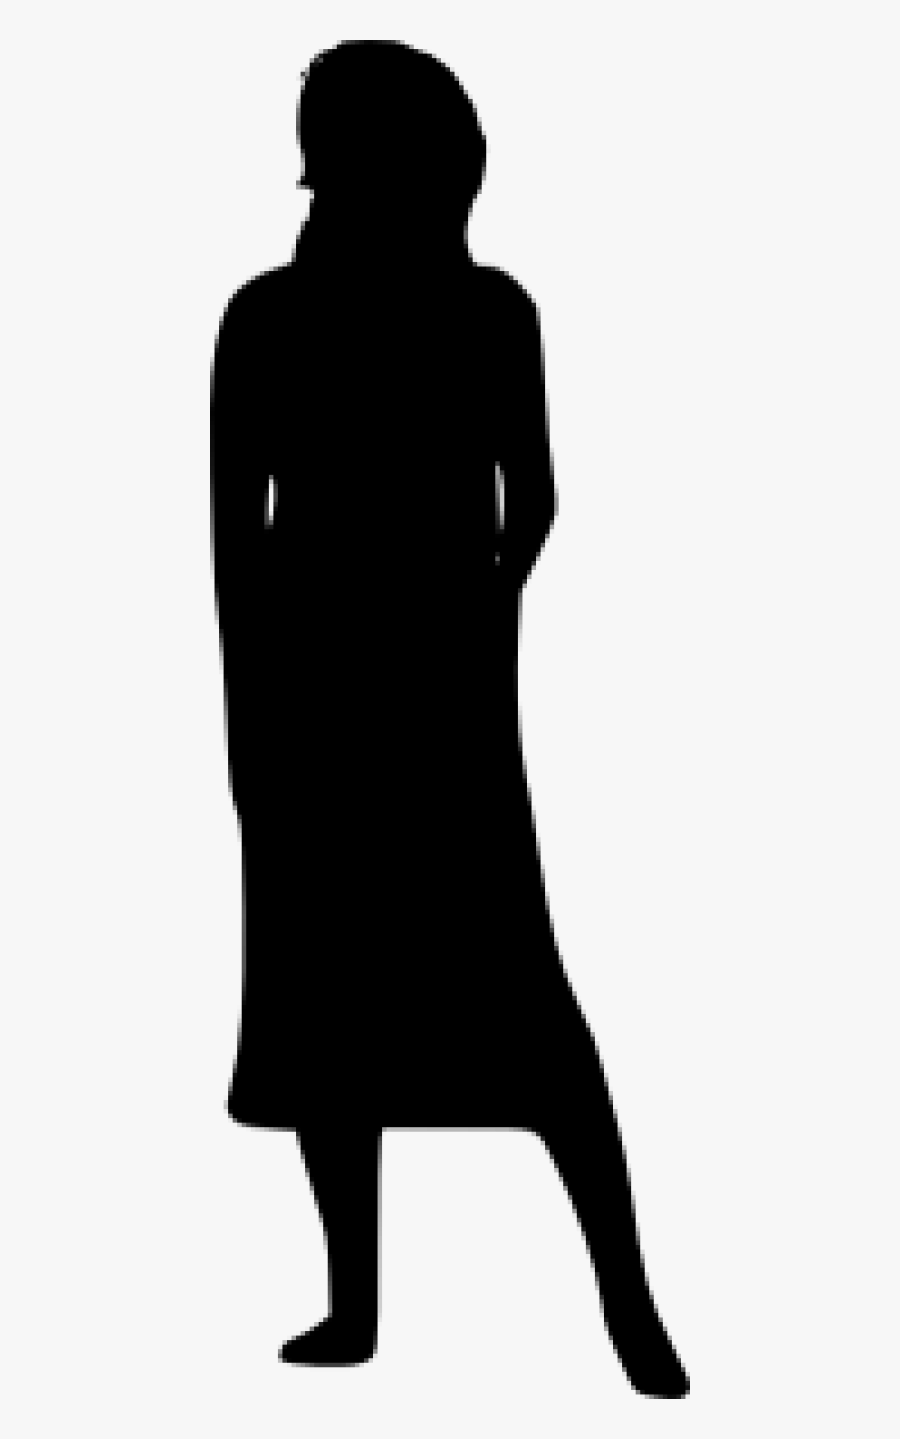 Free Png Woman Silhouette Png - Middle Aged Woman Silhouette, Transparent Clipart